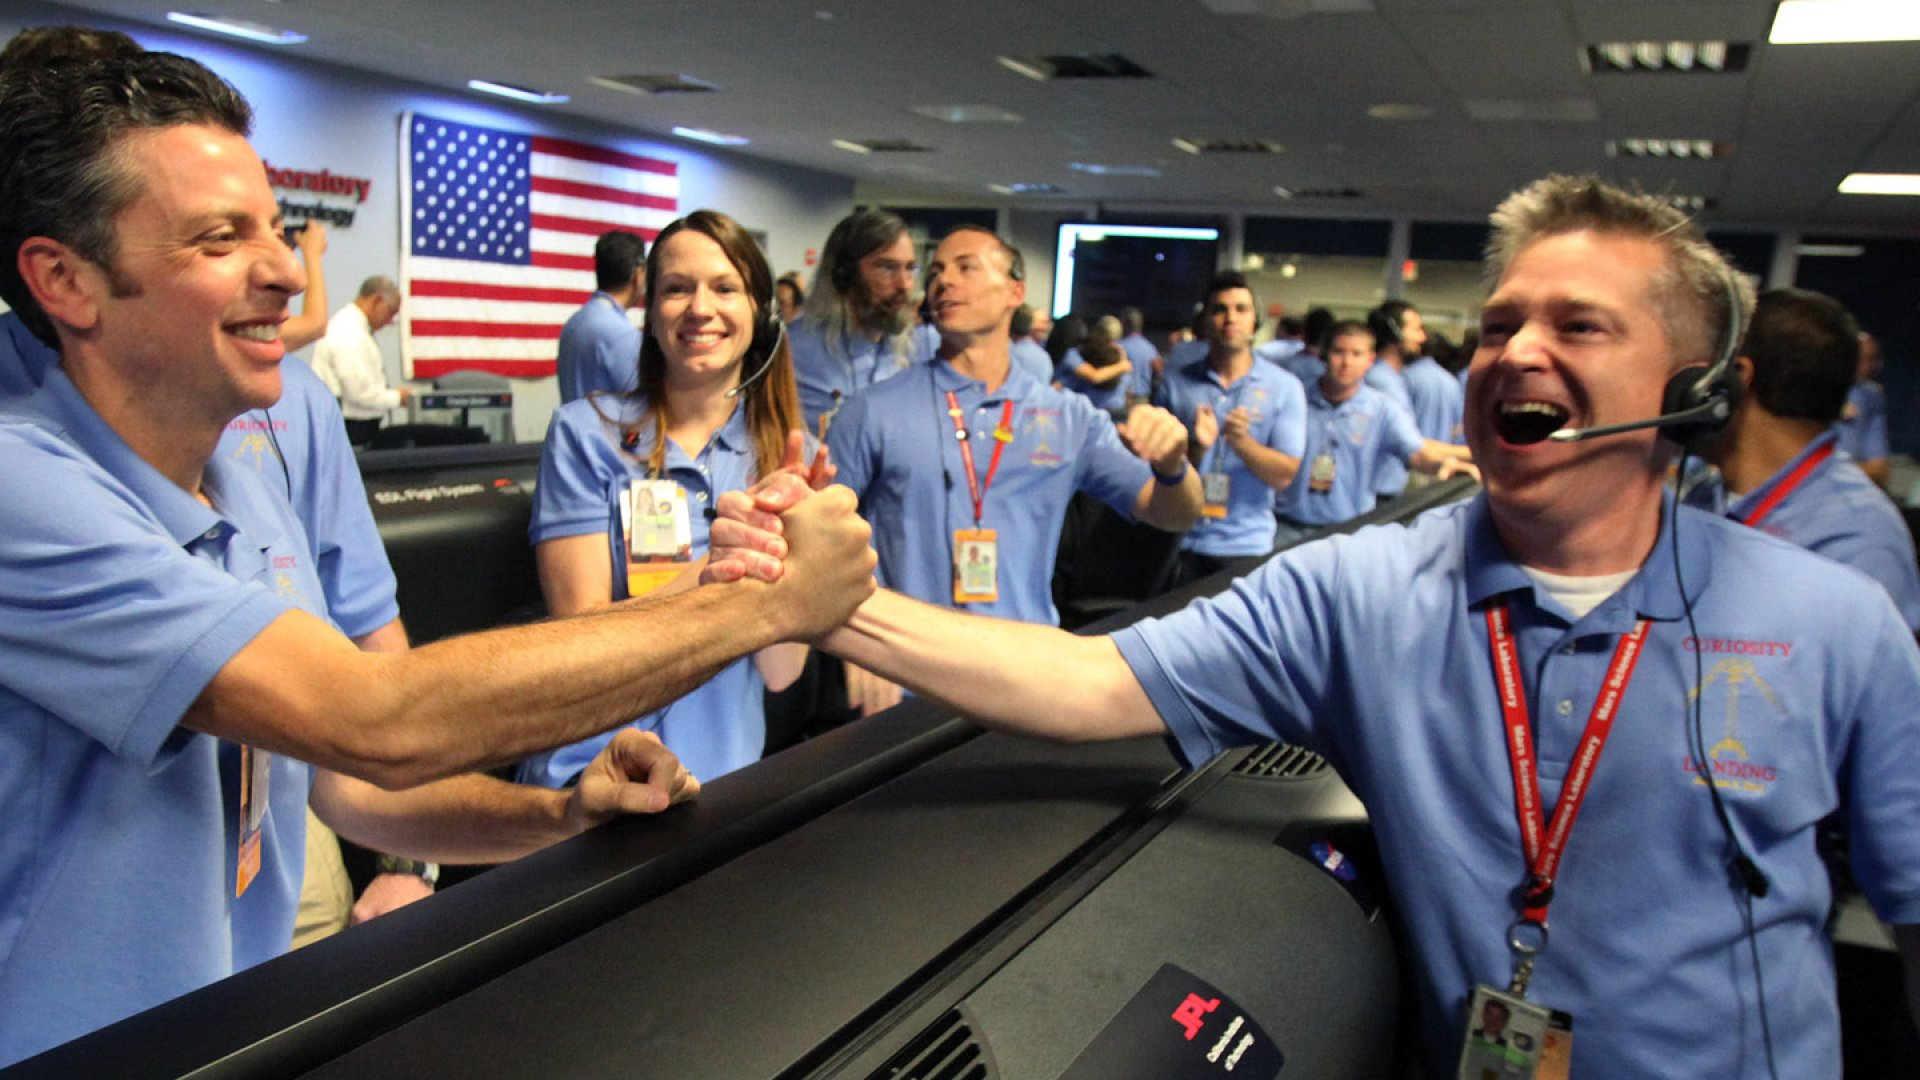 Flight director Keith Comeaux, right, celebrates with Martin Greco after a successful landing of NASA's Mars Science Laboratory Curiosity rover at Jet Propulsion Laboratory on August 5, 2012 in Pasadena, California.